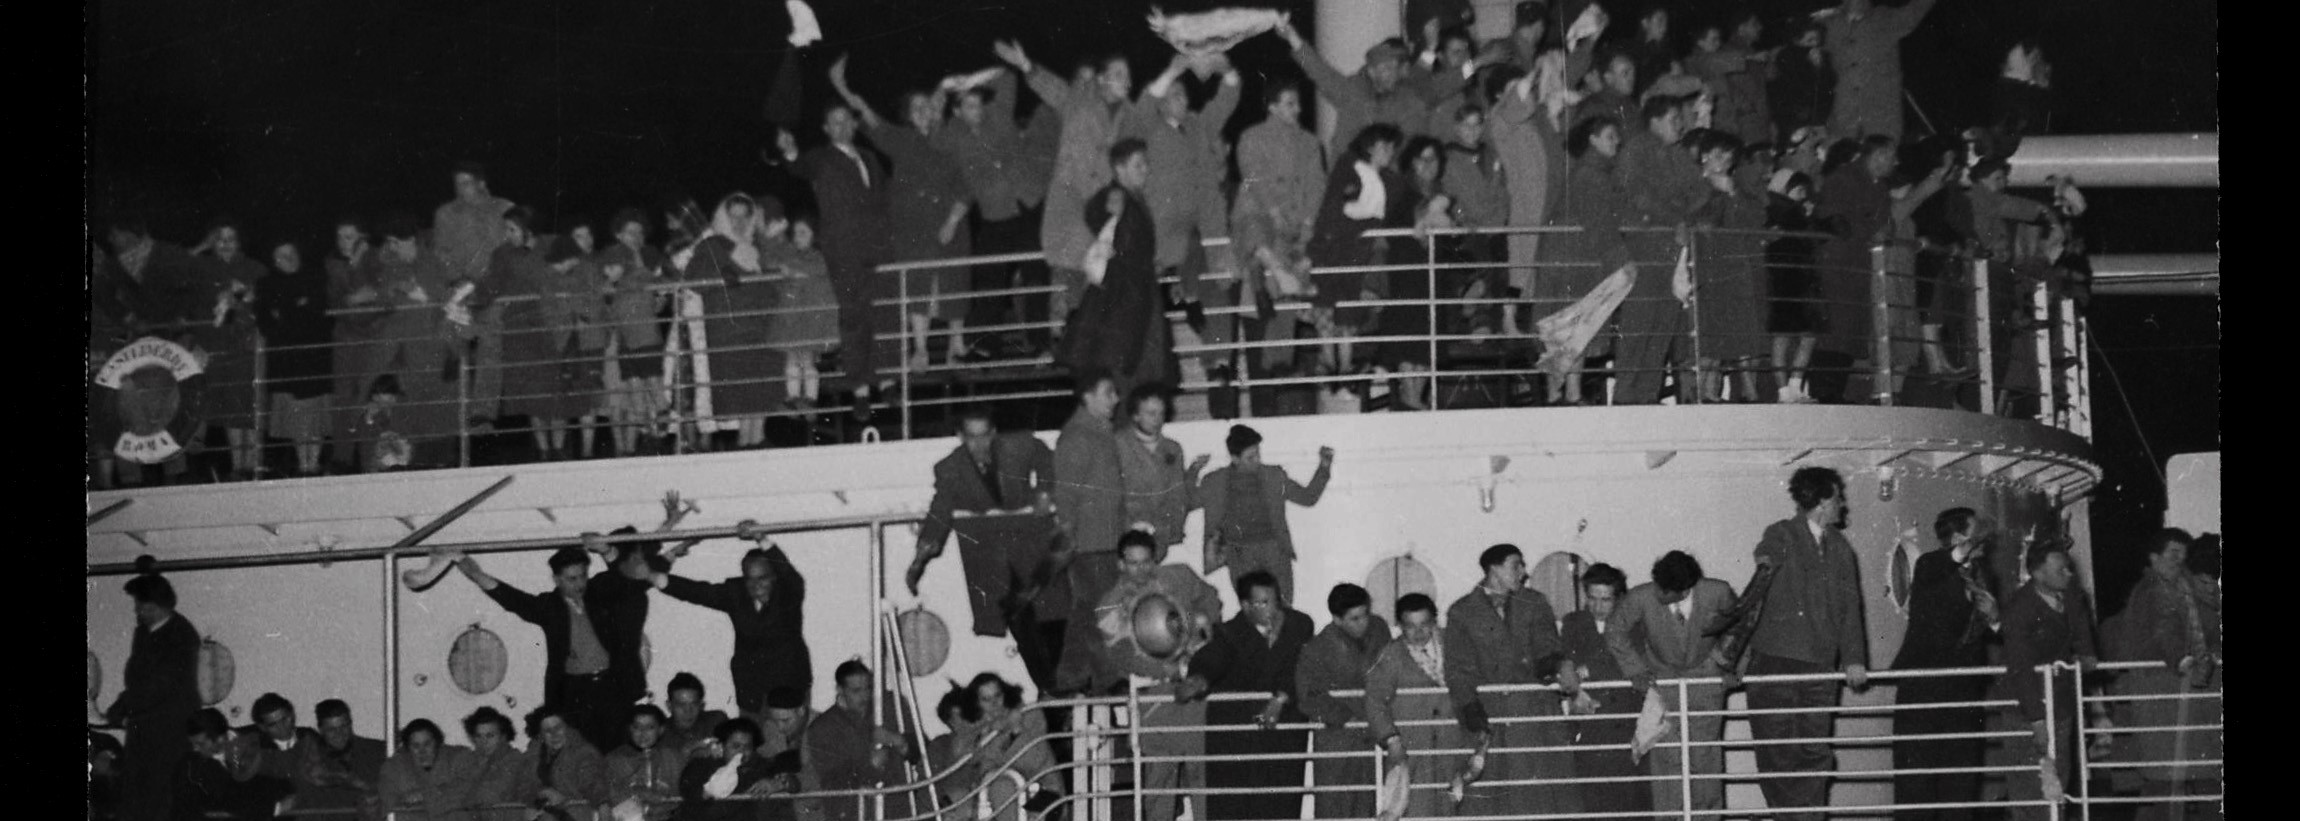 Migrants departing Italy for Australia 1953 (Photo: Australian National Maritime Museum on The Commons)